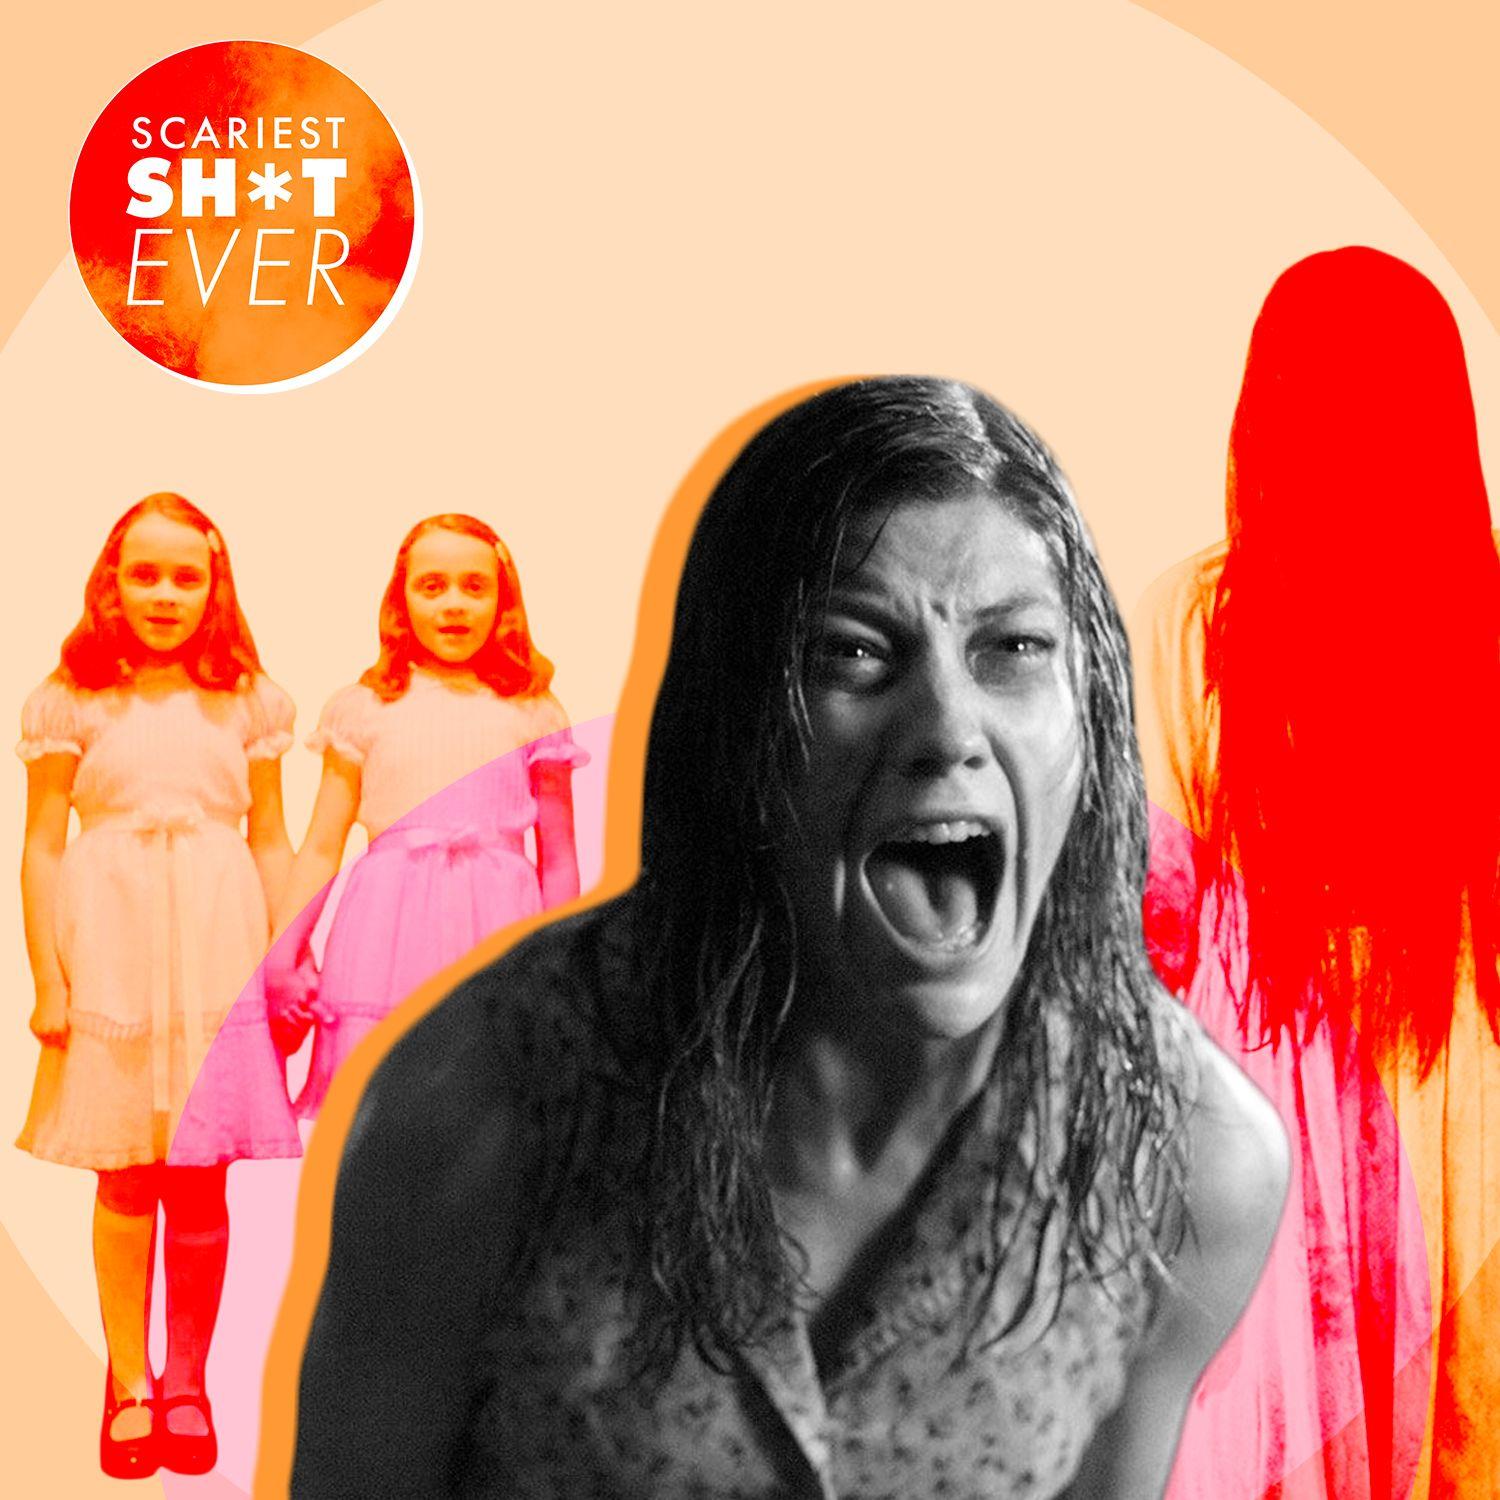 Our Guide to the Scariest Horror Movies You Need to Binge-Watch This Month